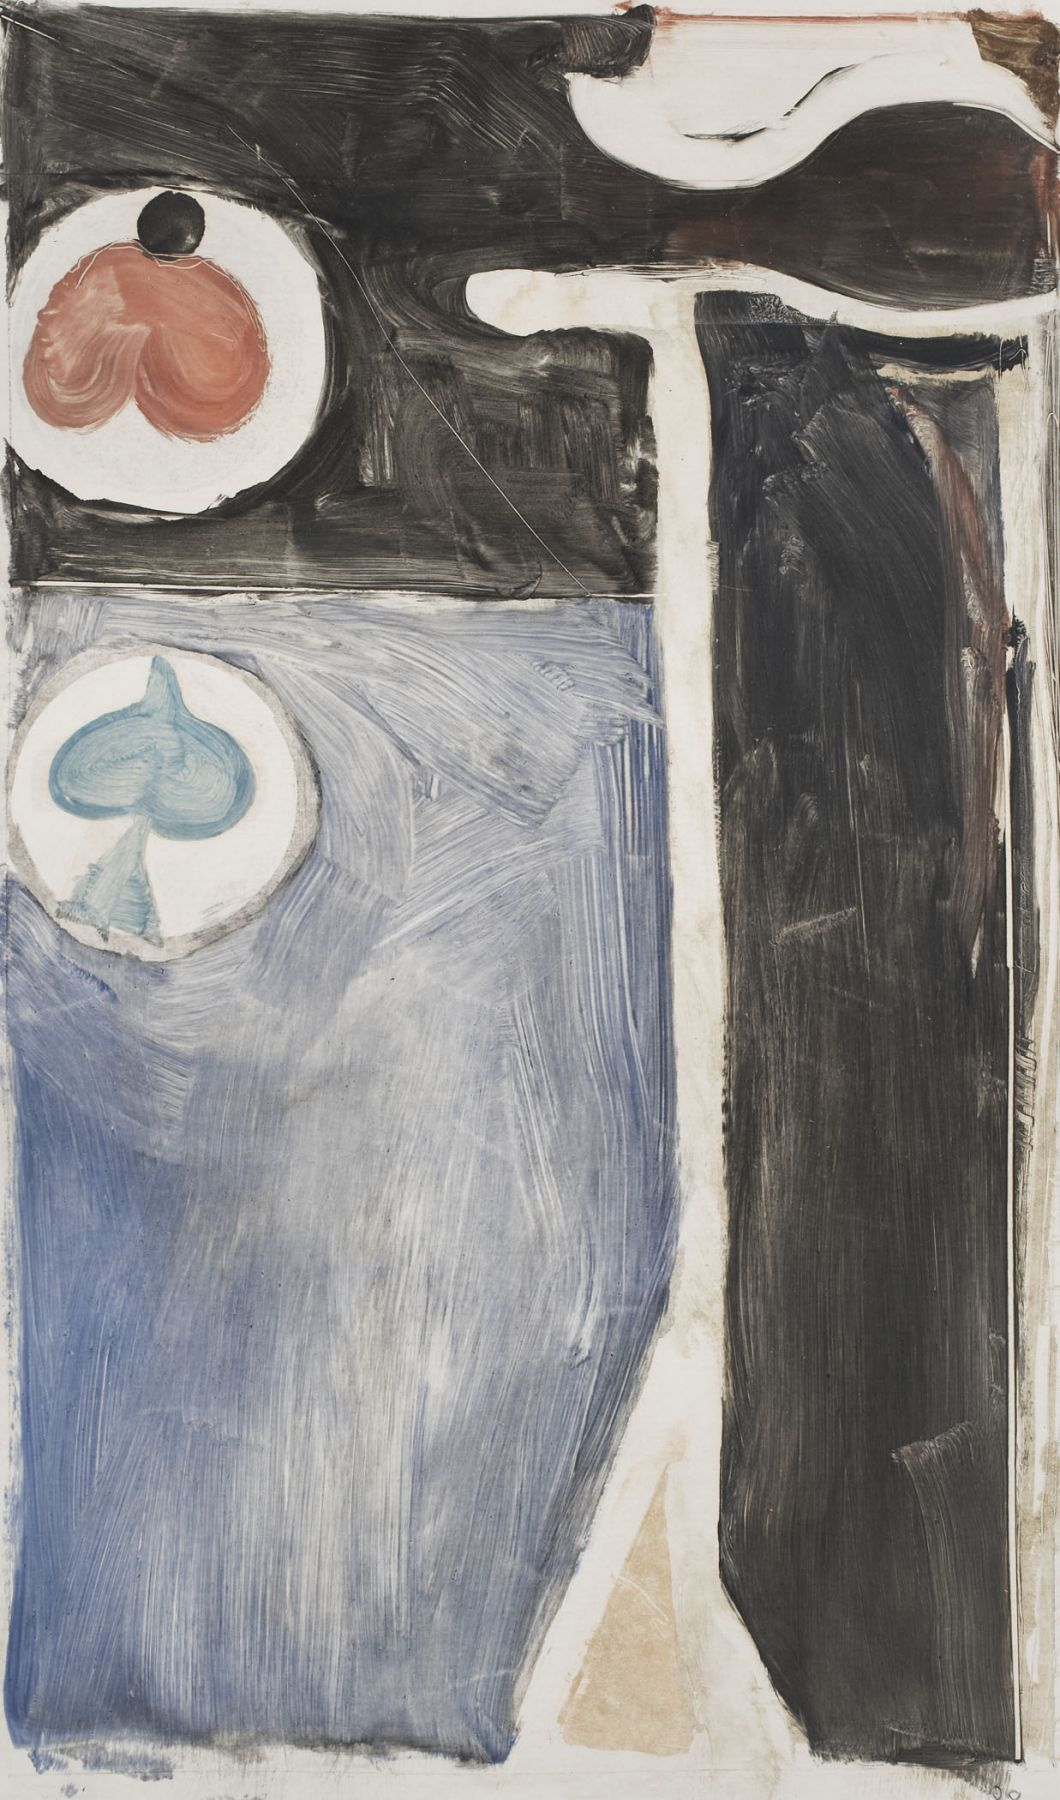 IV,1988 Monotype Image size: 22 x 15 inches (48.3 x 29.2 cm)